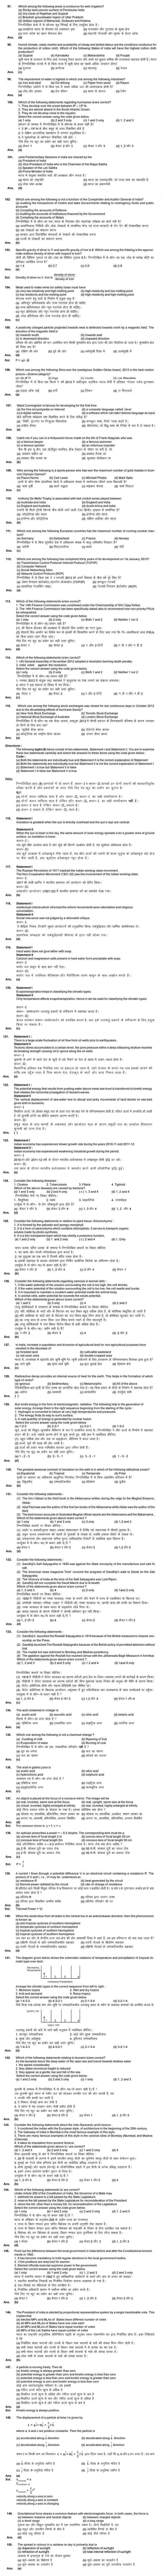 NDA & NA Exam (I) 2013 Solved Question Paper – General Ability Test